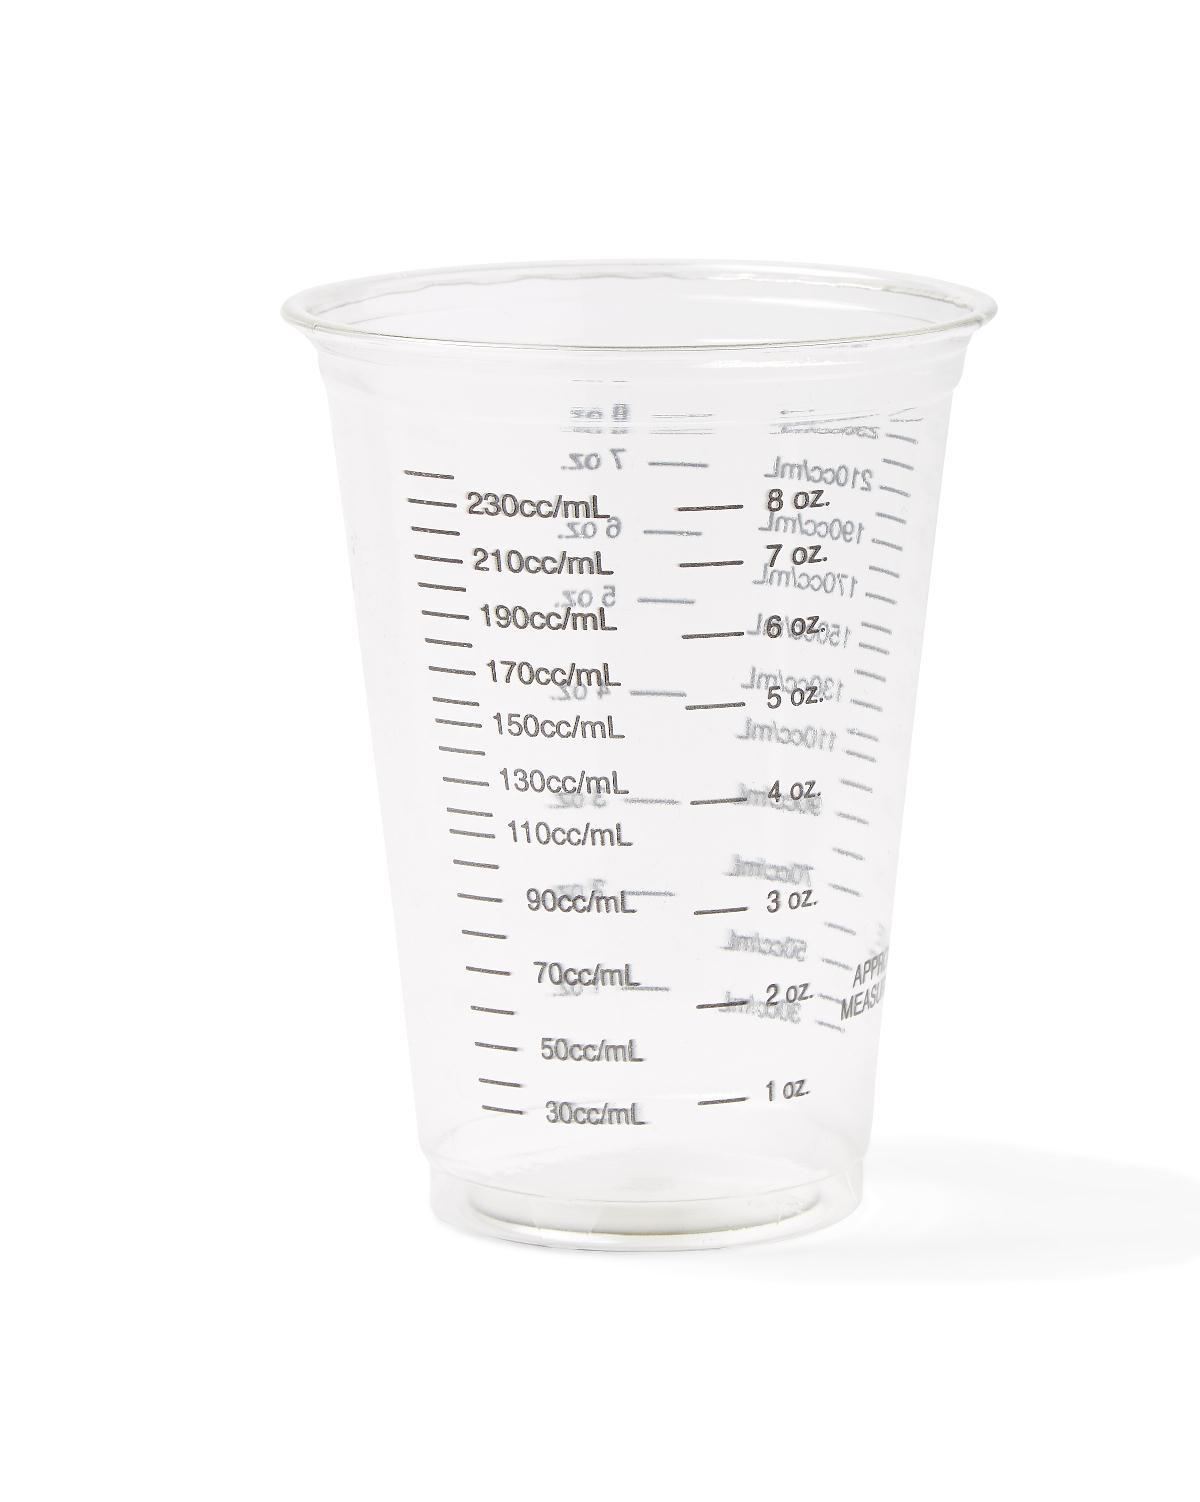 Cup Plastic Graduated 10 Ounce - Non03010barz - Food Service Drinking Cups Glasses NON03010BARZ